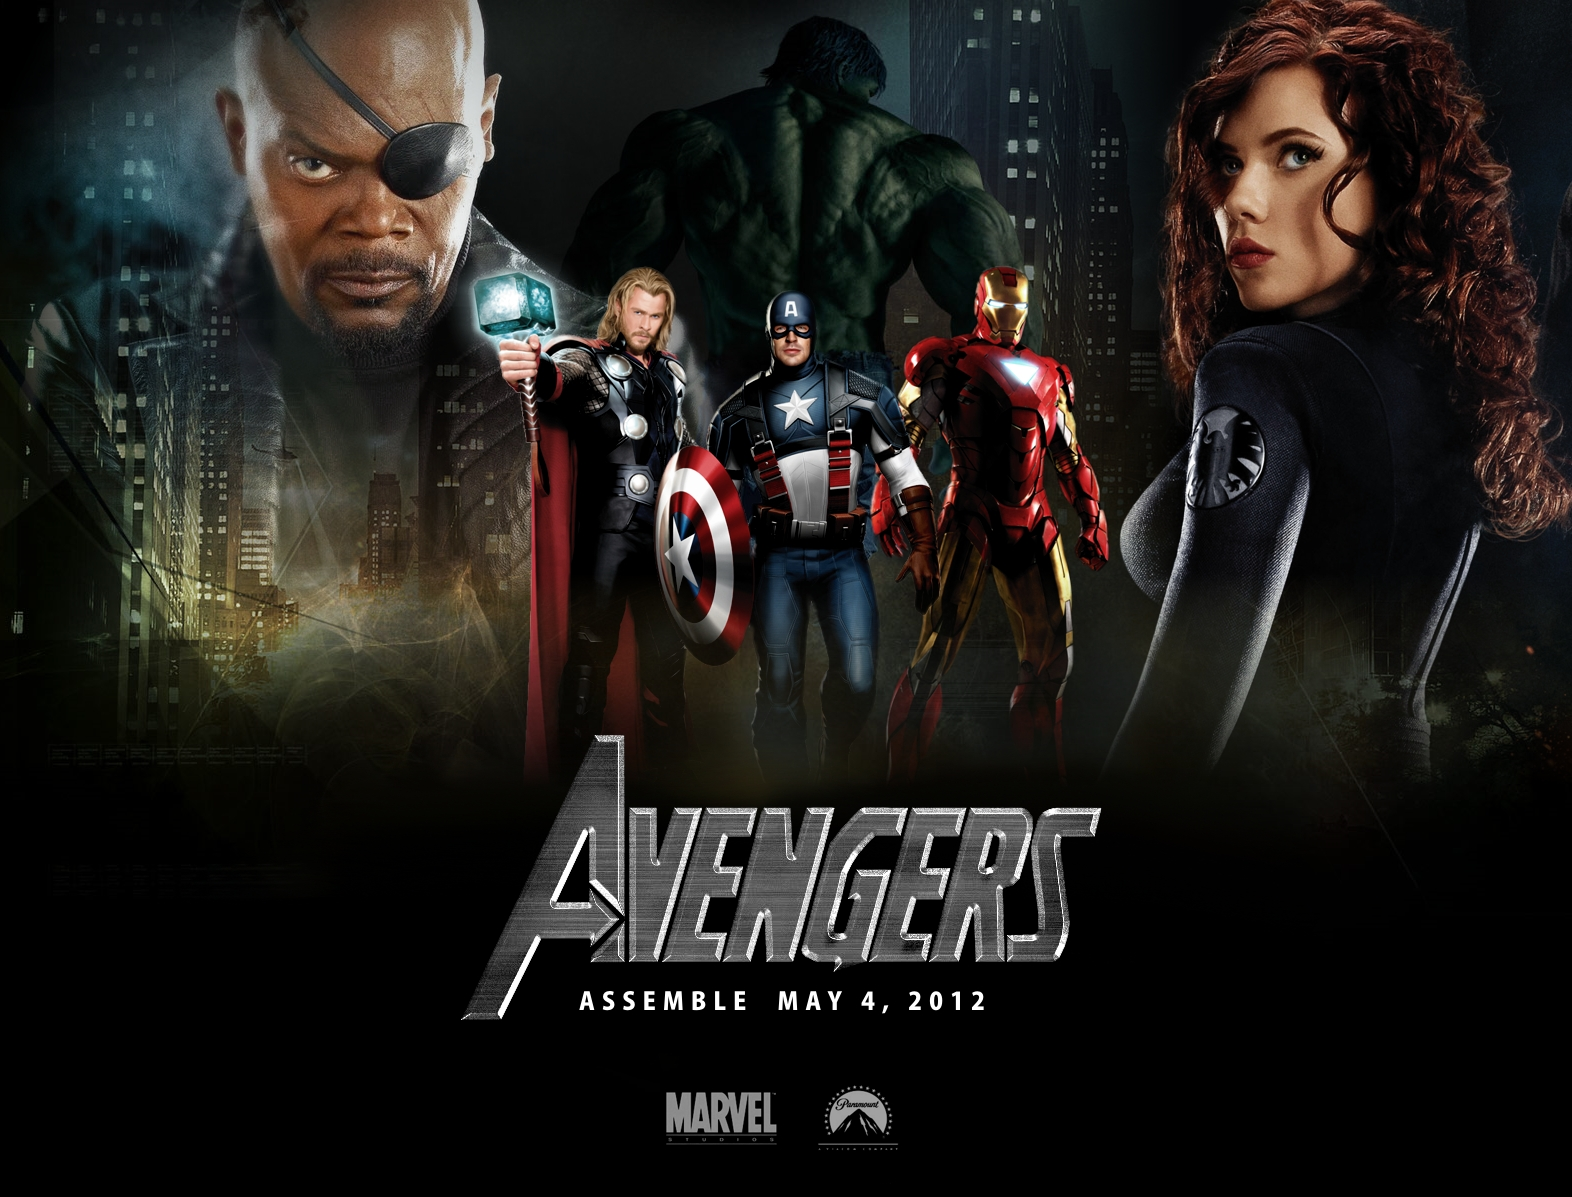 http://2.bp.blogspot.com/-86IddCNBmzE/T6B_ZCcC6_I/AAAAAAAAACk/O_Or9N0ETyo/s1600/the-avengers-movie-poster-wallpaper.jpg